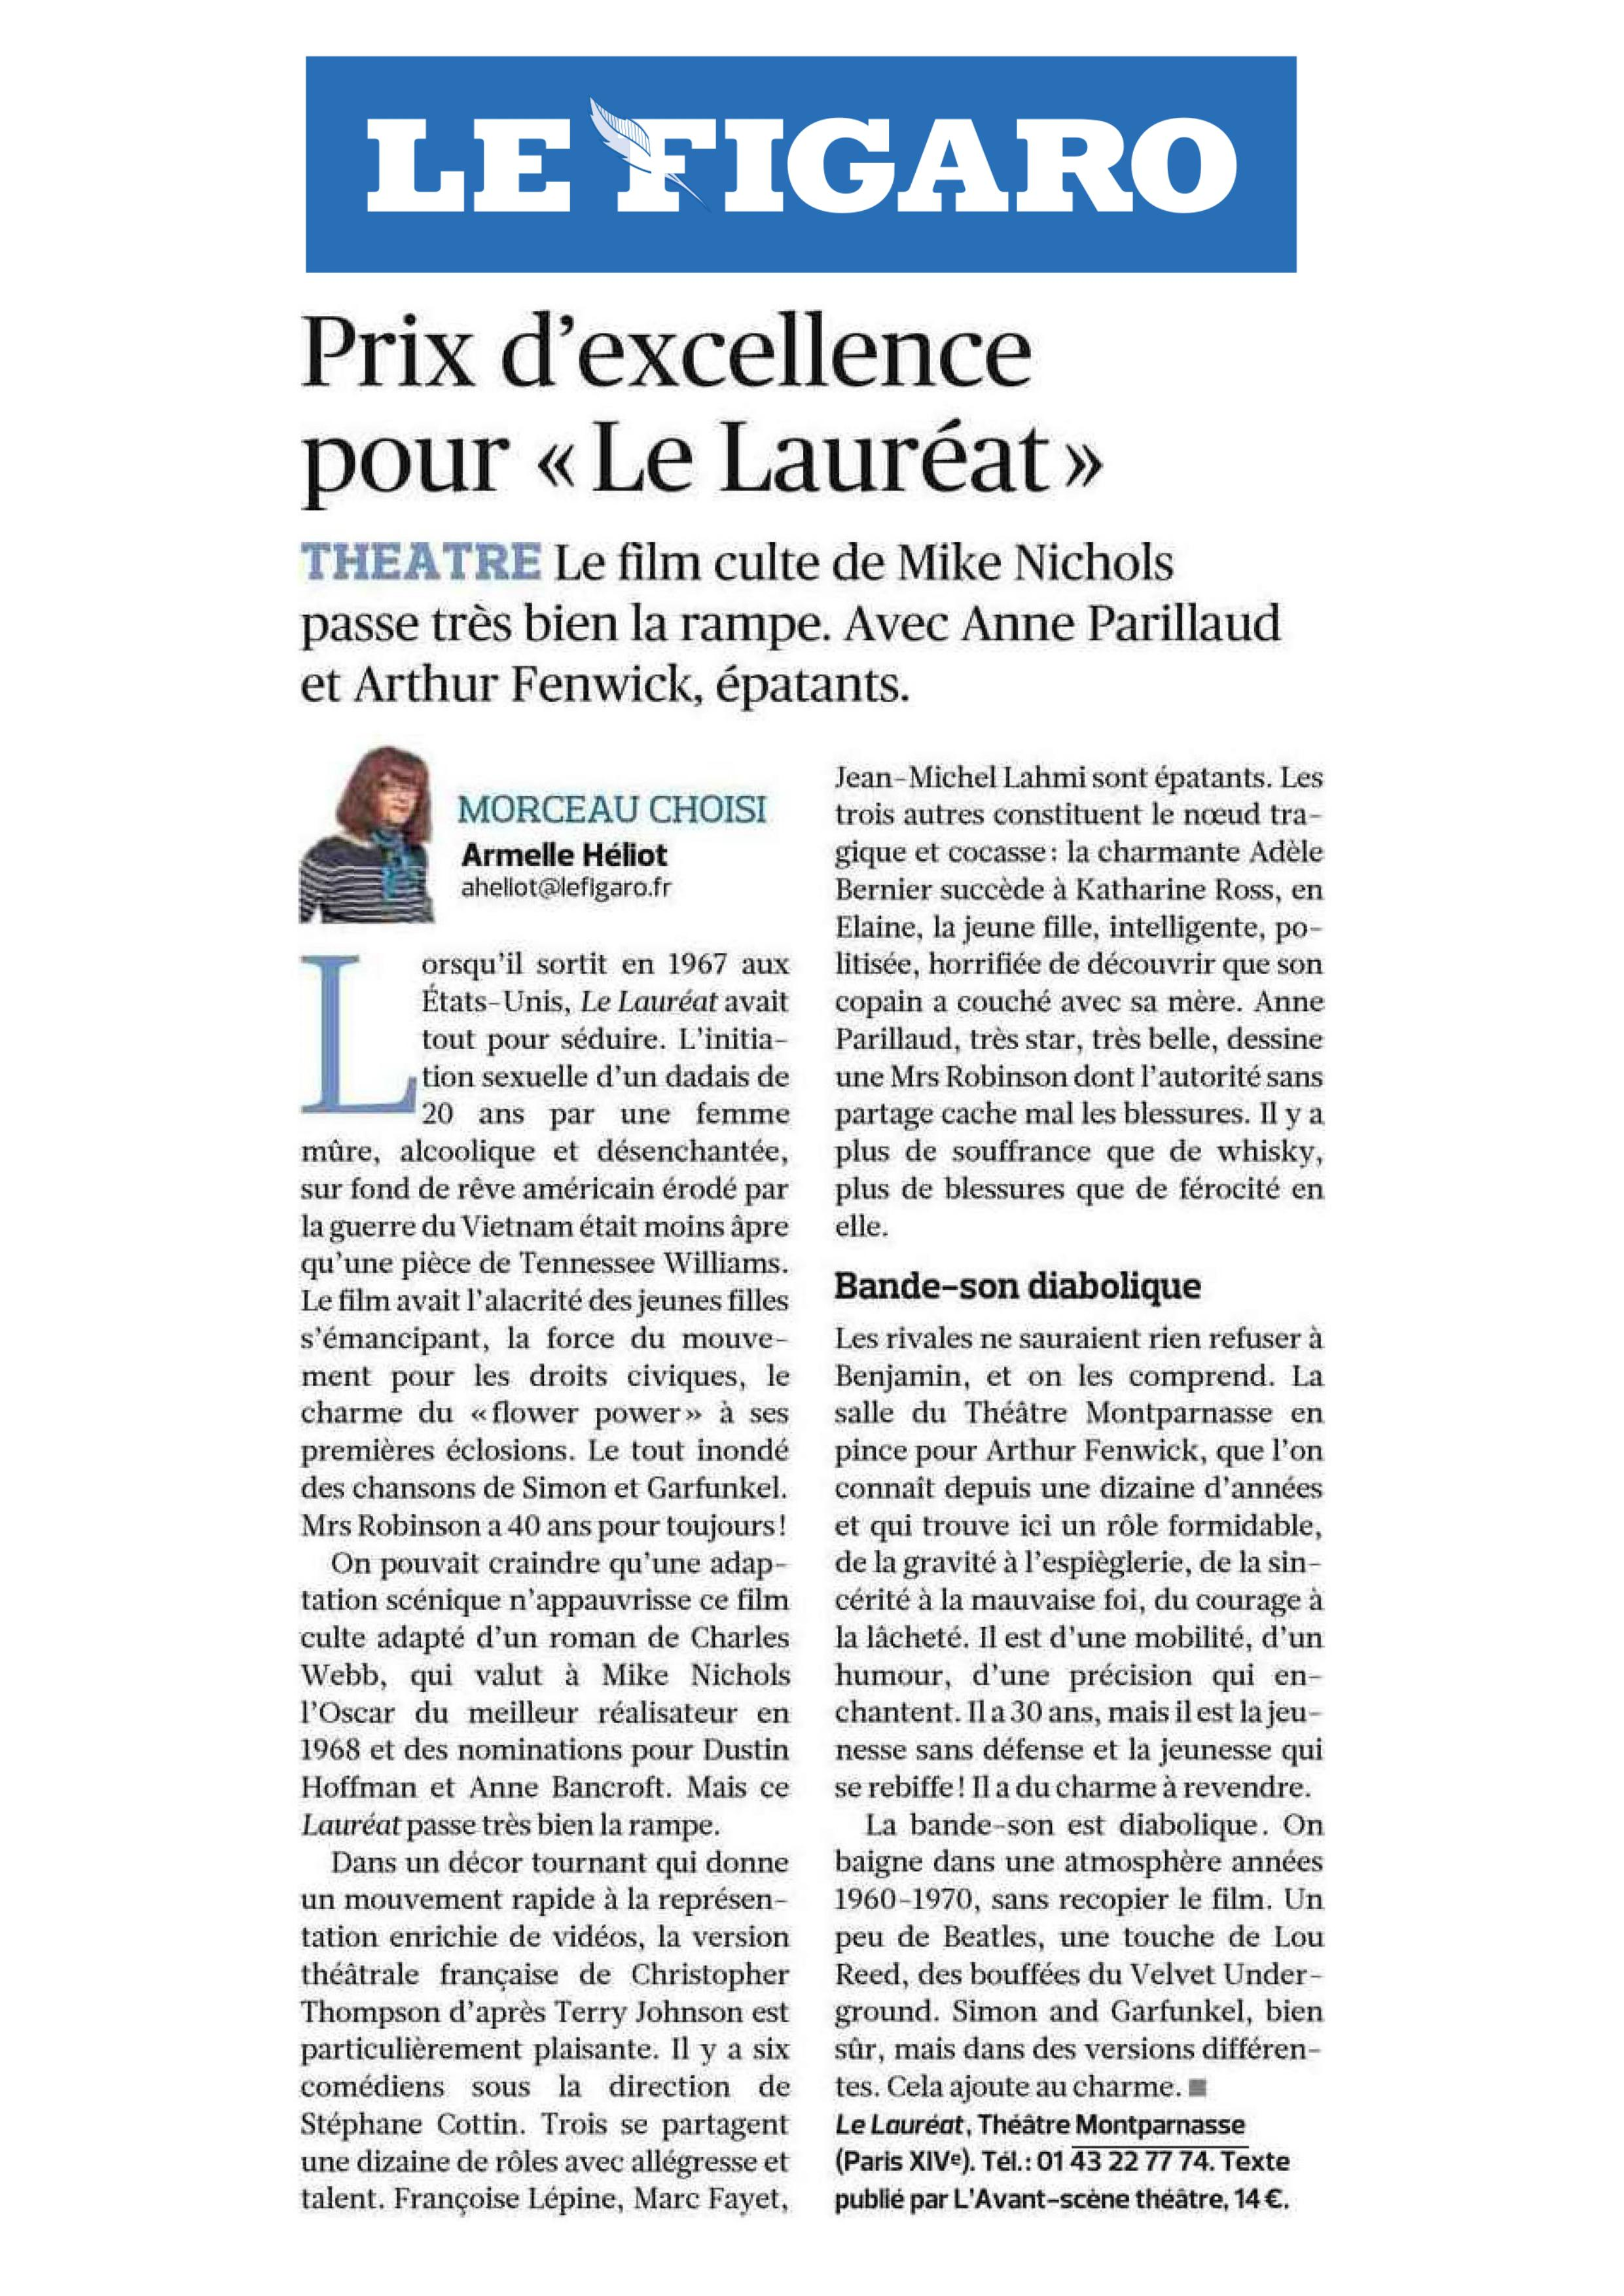 Le Figaro A Heliot